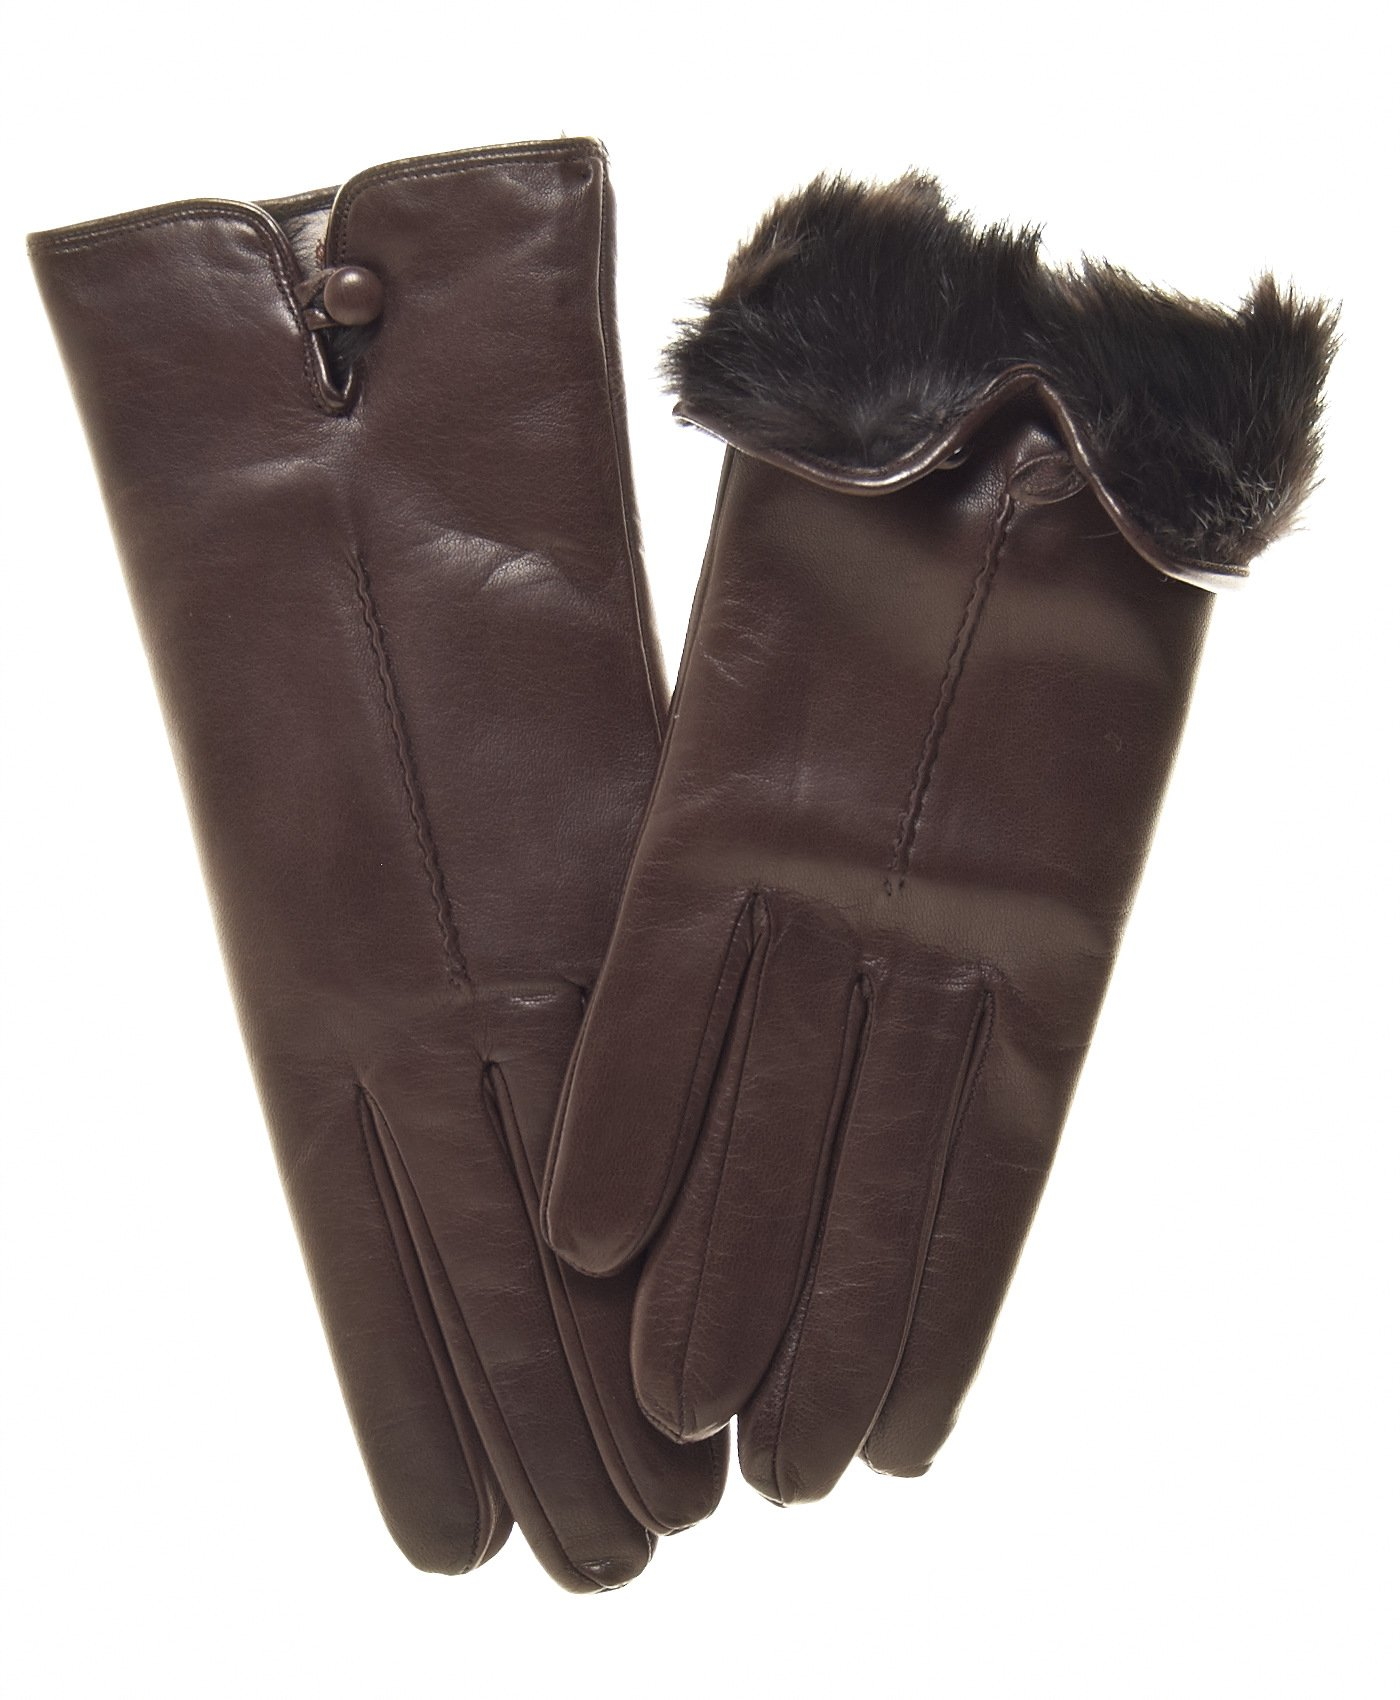 Fratelli Orsini Women's Italian Rabbit Fur Lined Gloves with Button Size 7 Color Brown